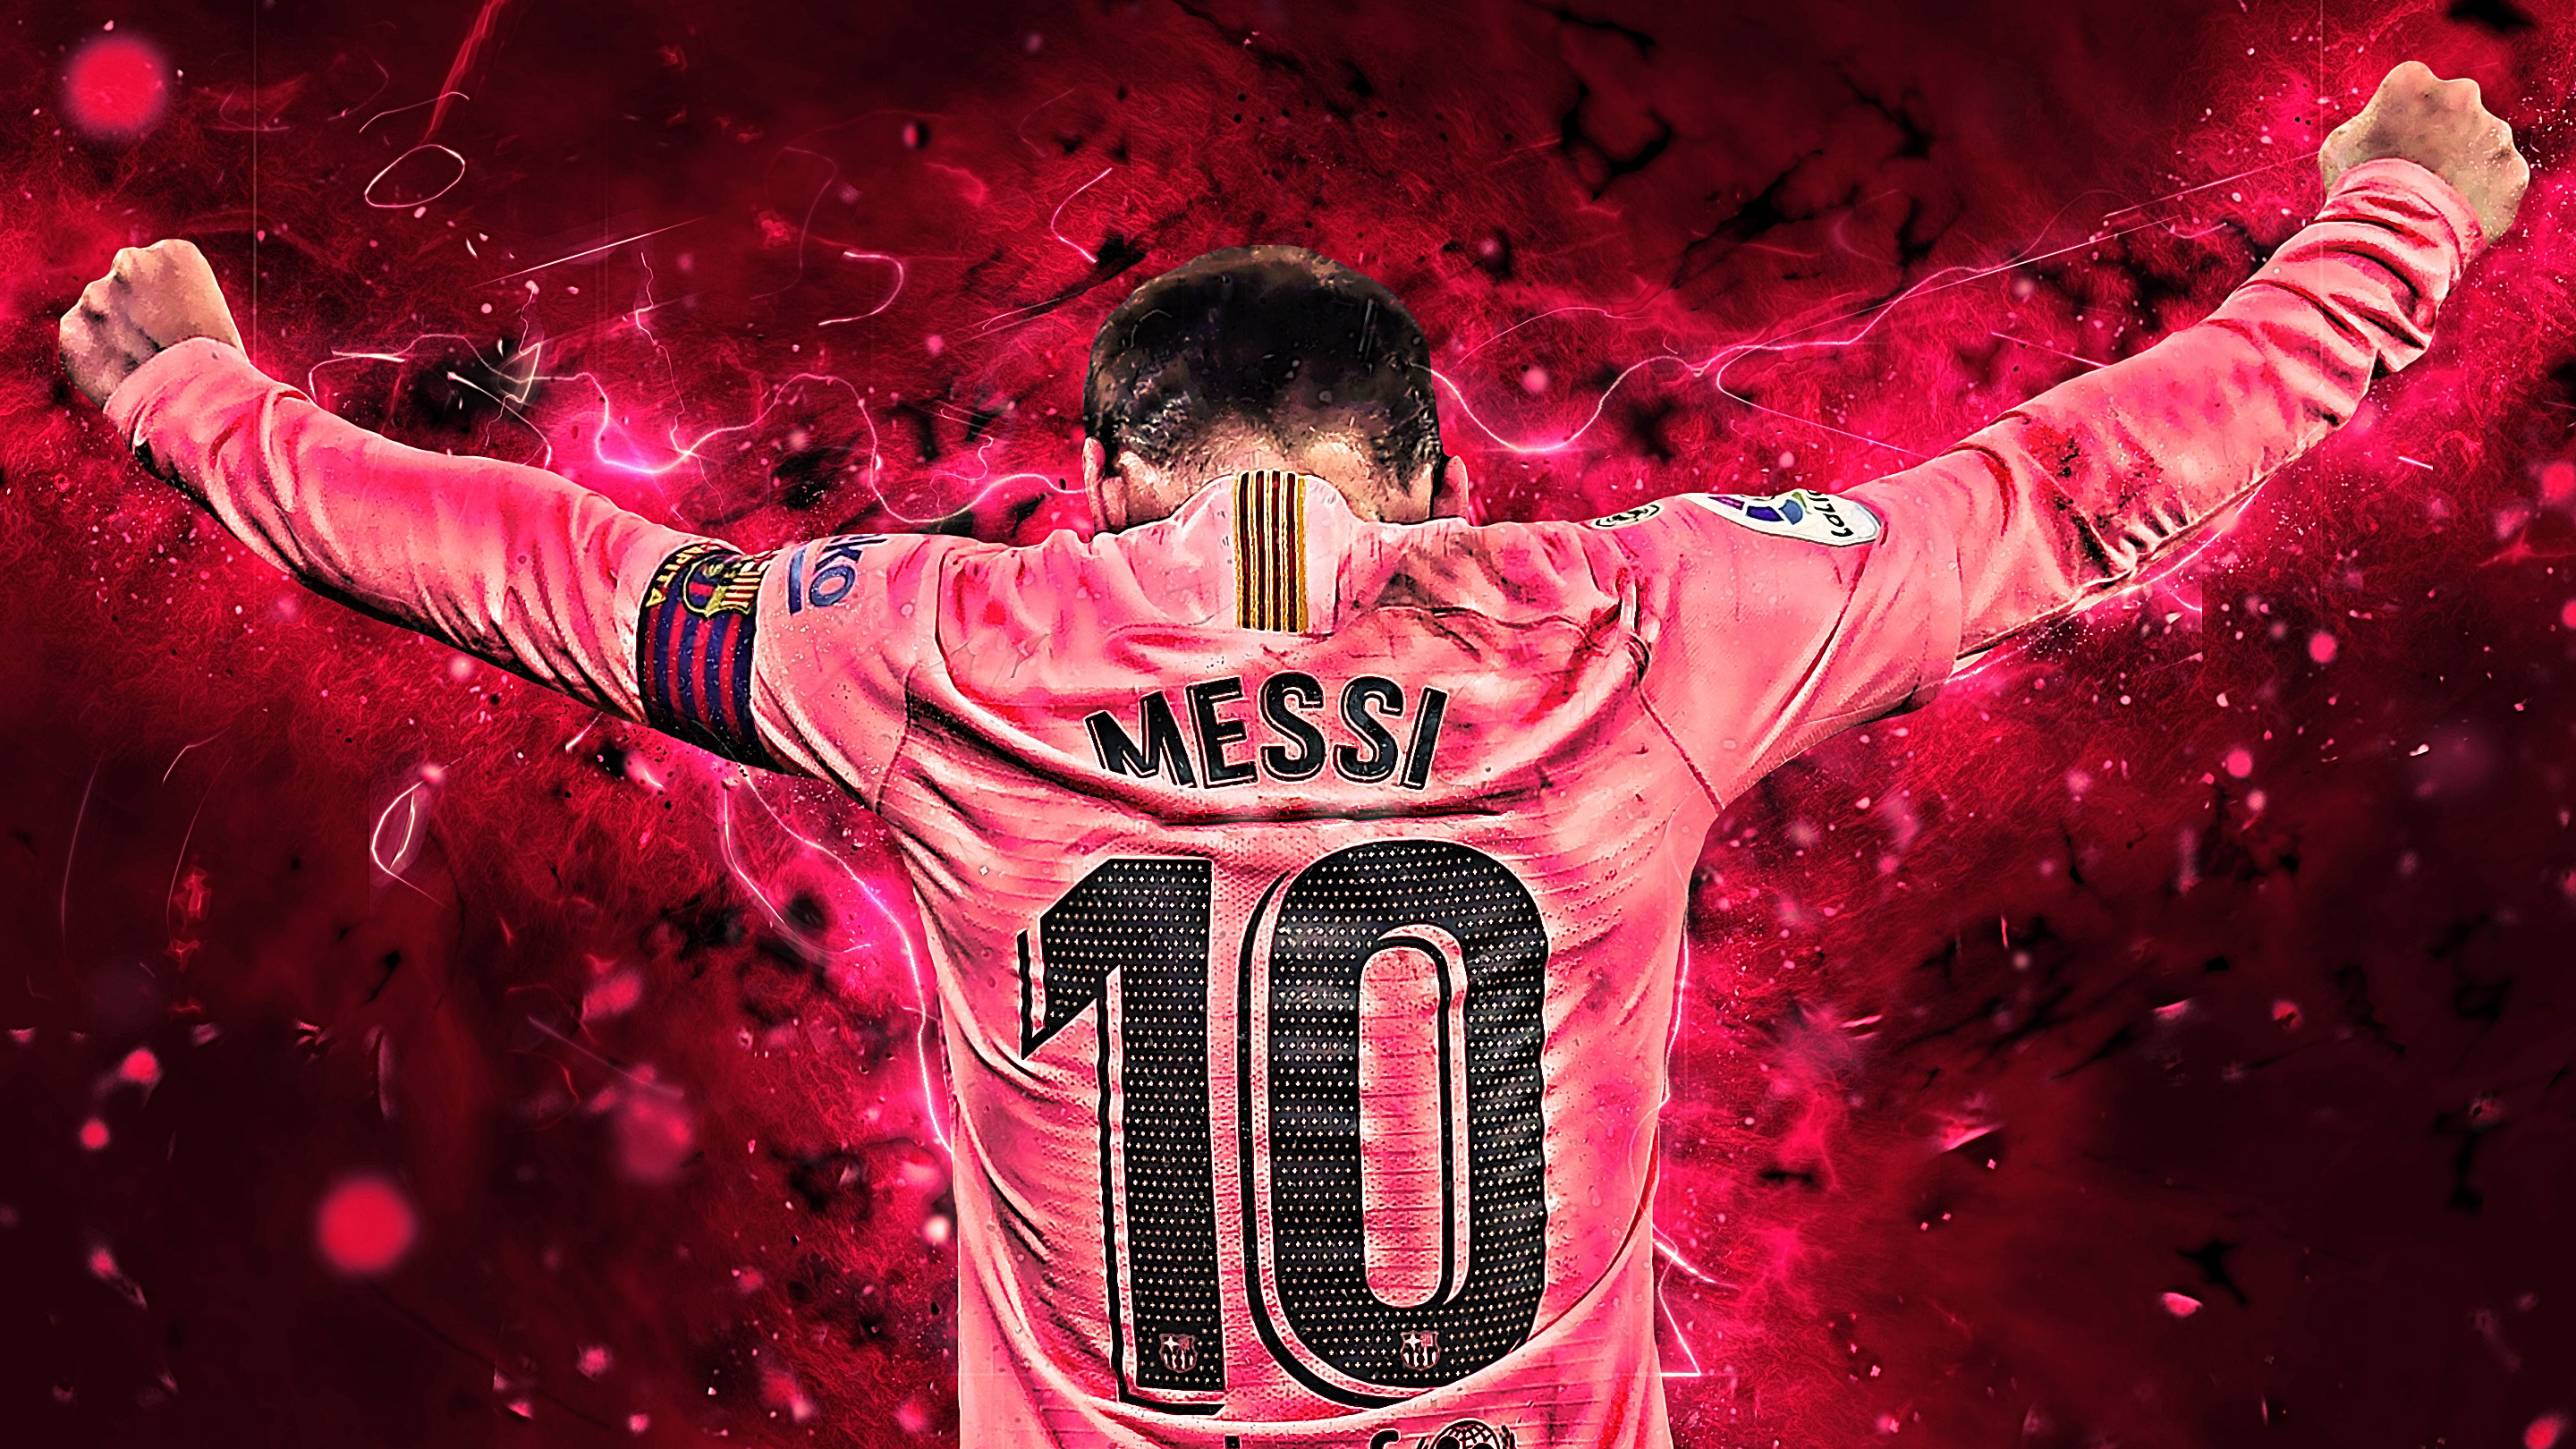 Lionel Messi 2019 Wallpapers HD Wallpapers 2880x1620